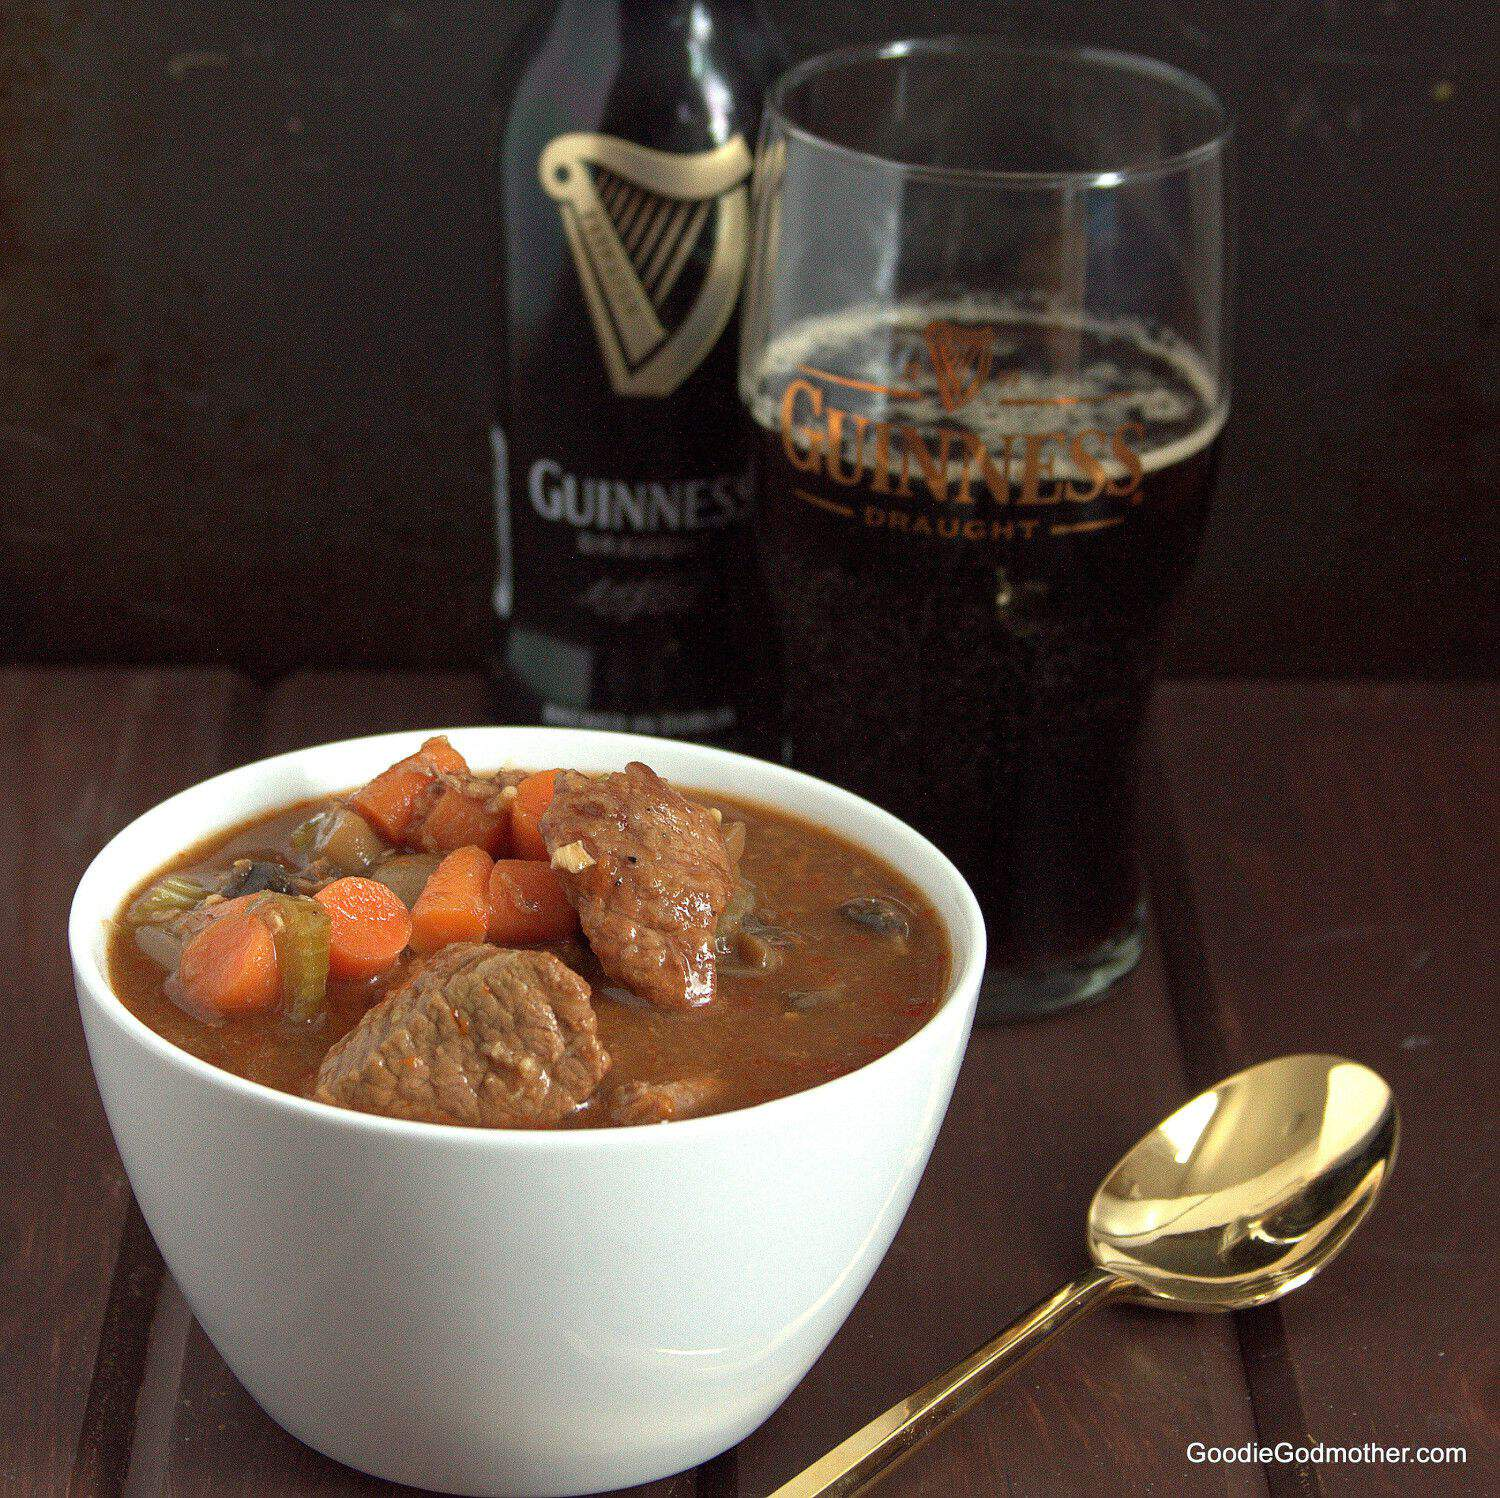 Delicious and surprisingly healthy Guinness Beef Stew Recipe for St Patrick's Day!